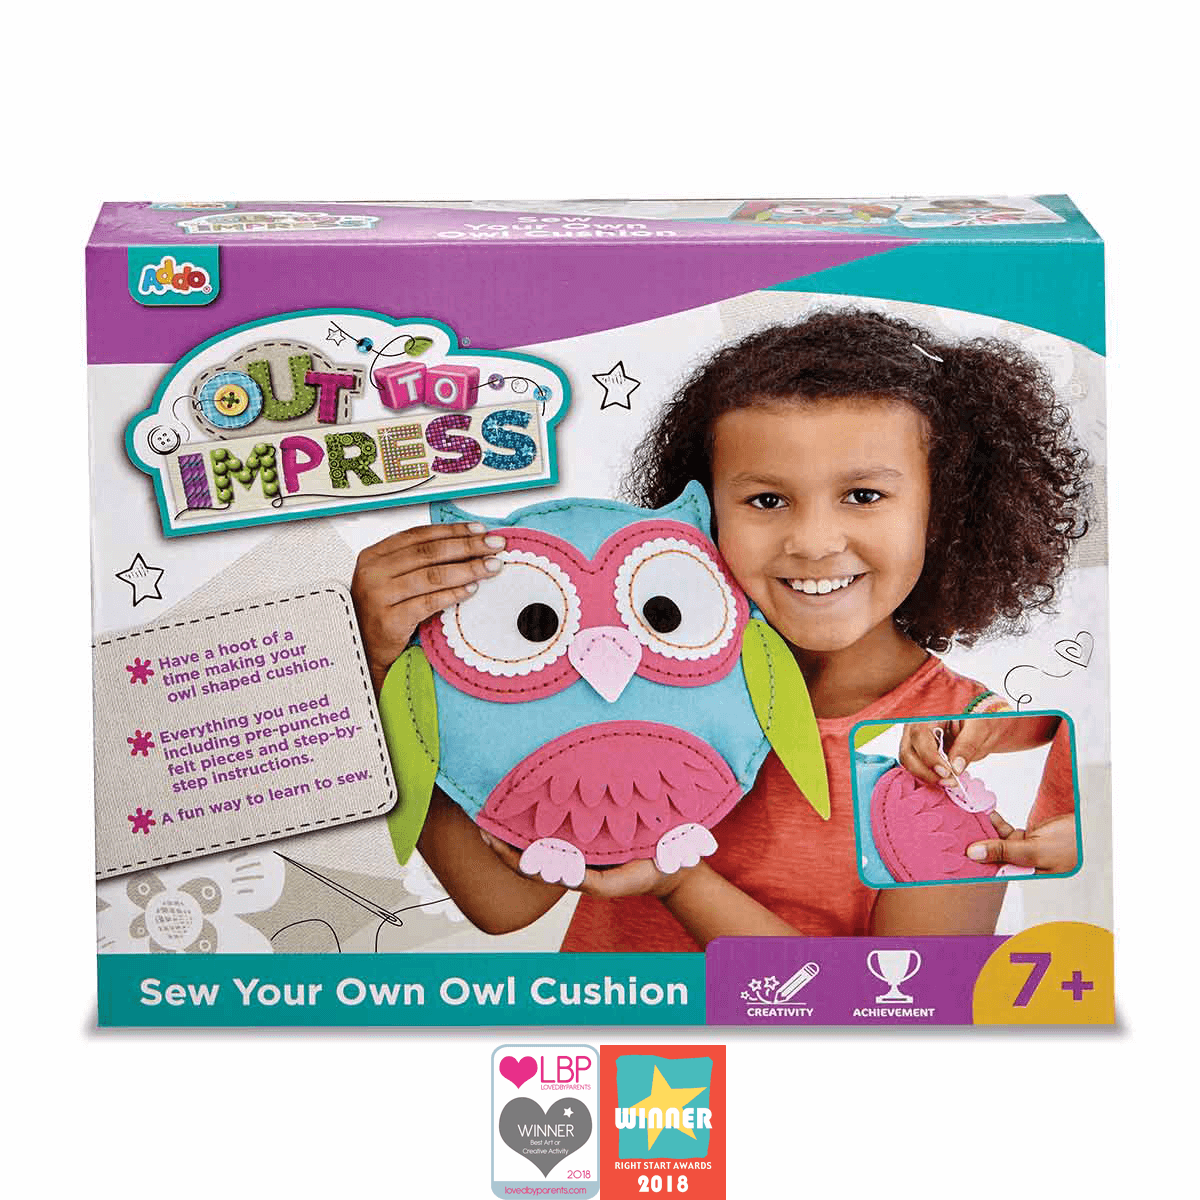 Made in UK Crafty Kit Sew Your Own Kit Choose from Owl or Three Felt Puppies